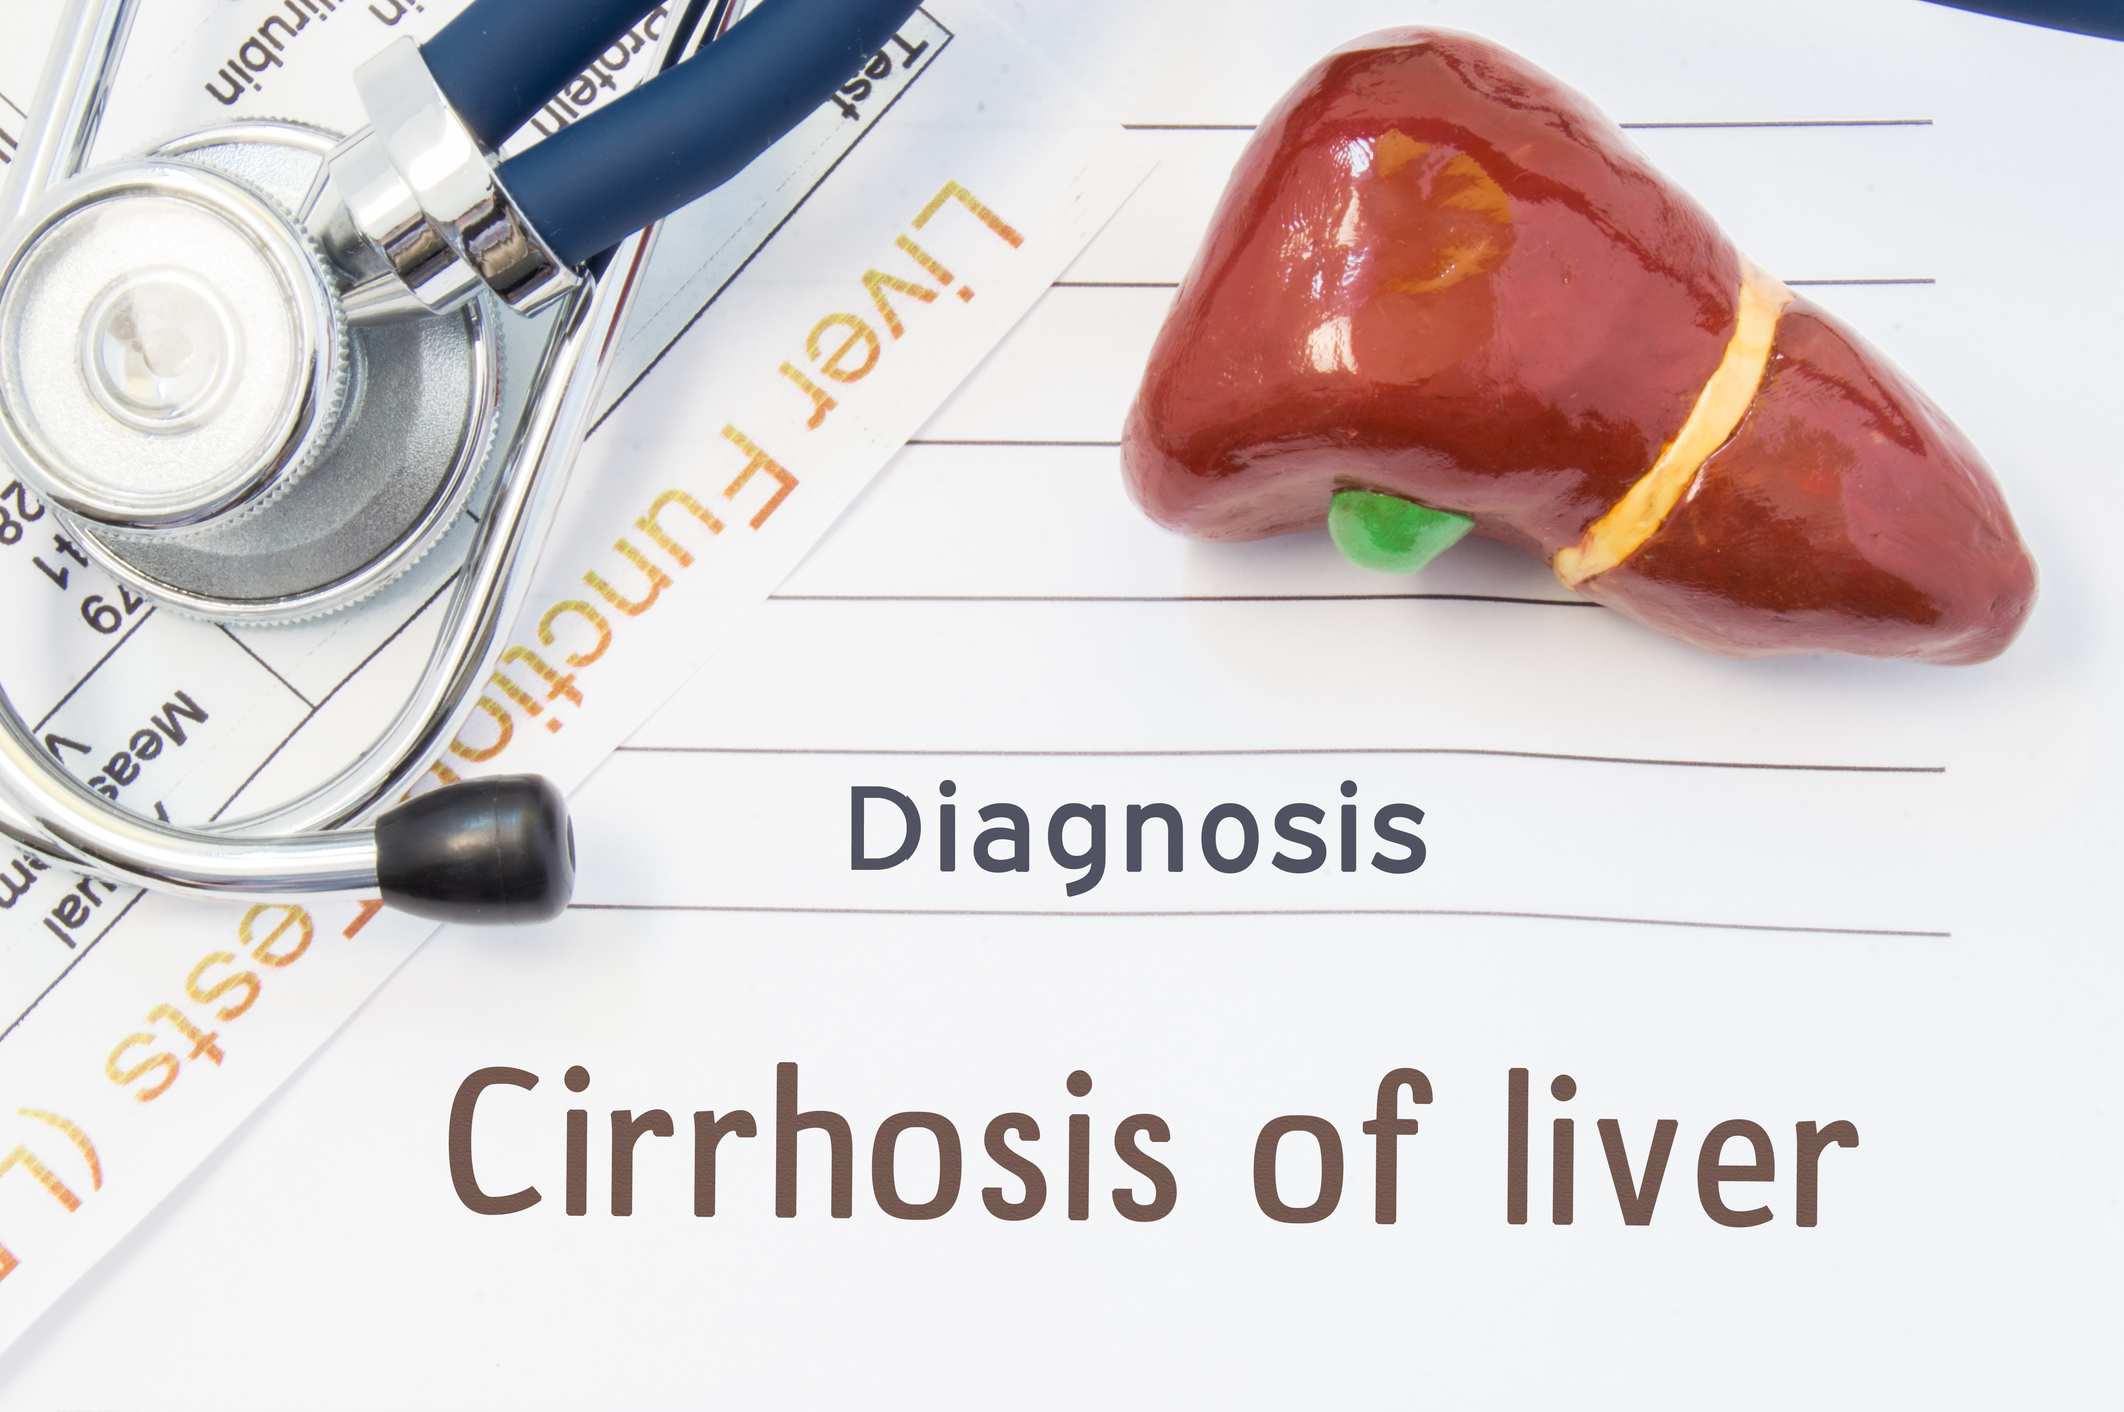 Cirrhosis Of The Liver Diagnosis Anatomical 3d Model Of Human Liver